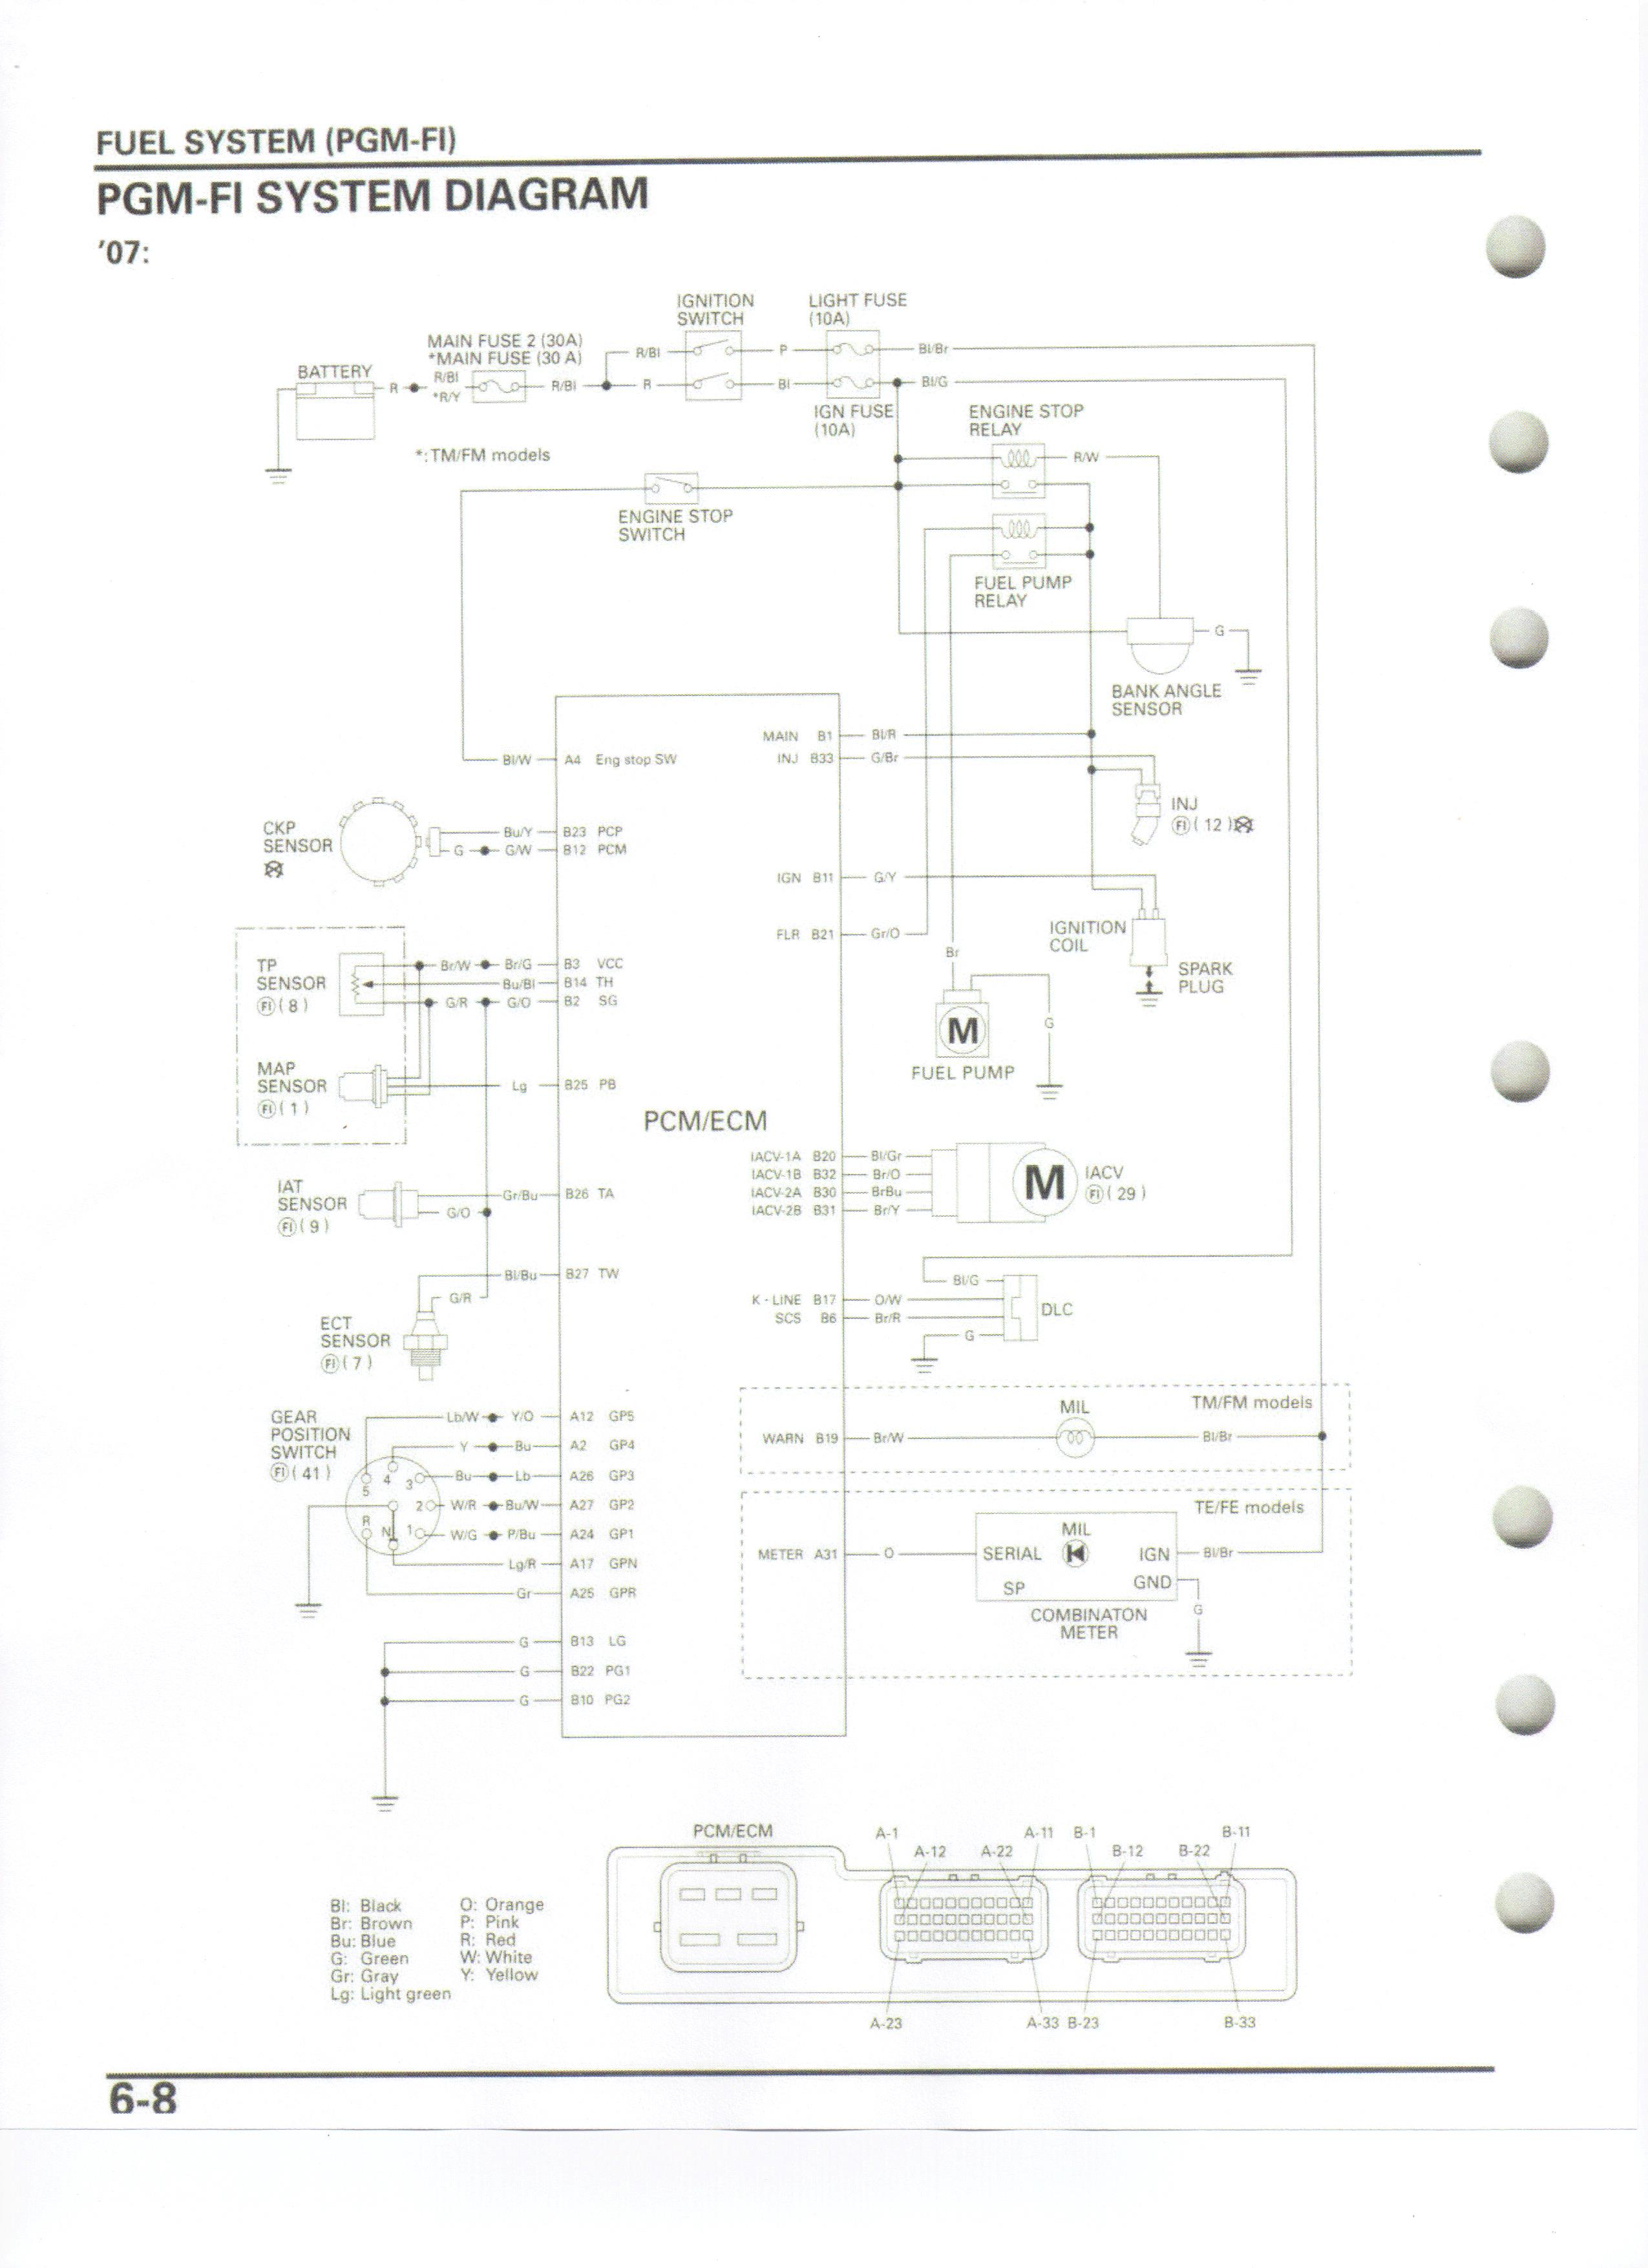 Wiring Diagram For A 2006 Honda Foreman Es Libraries Gpi Fuel Pump Atv Schematics420fm No Spark Fi Or Temp